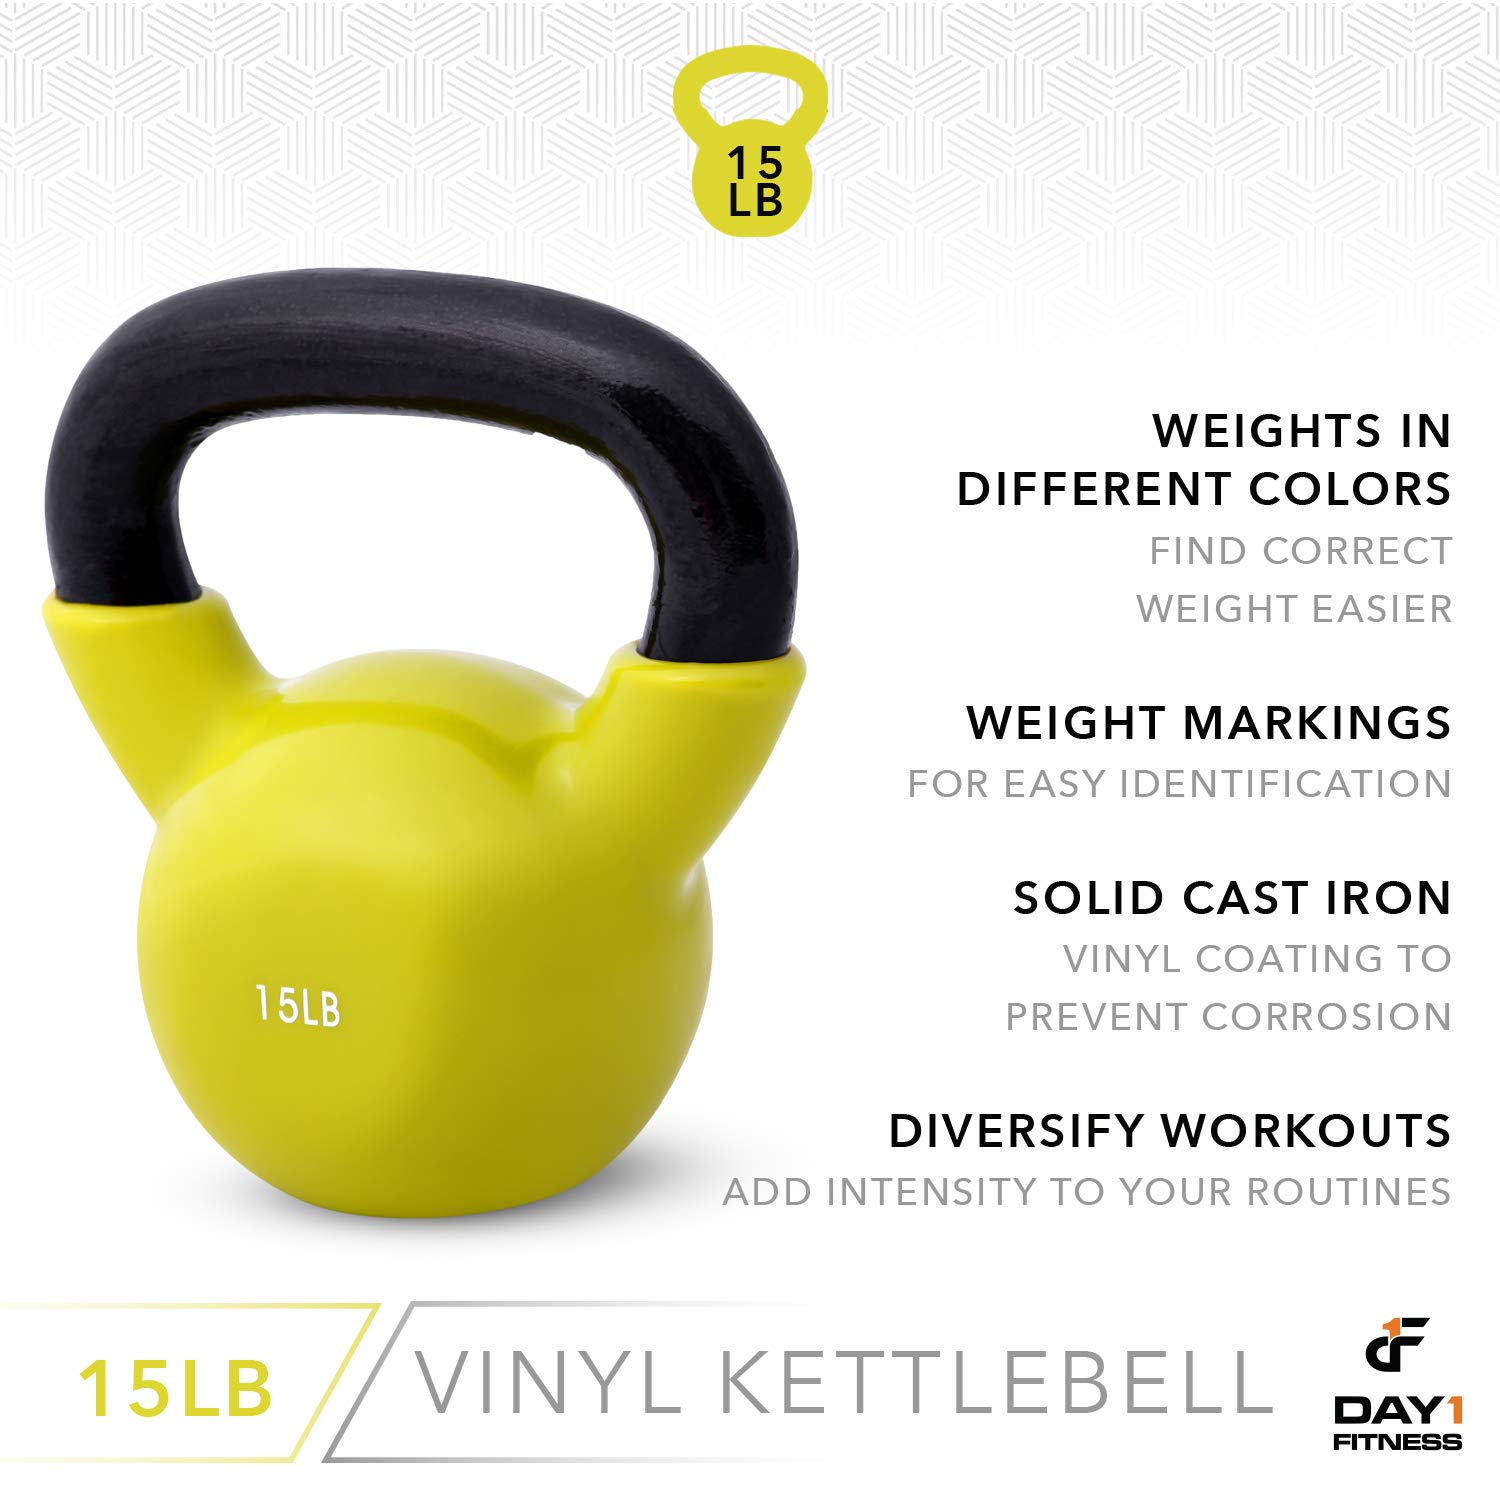 Day 1 Fitness Kettlebell Weights Vinyl Coated Iron 15 Pounds - Coated for Floor and Equipment Protection, Noise Reduction - Free Weights for Ballistic, Core, Weight Training by Day 1 Fitness (Image #5)